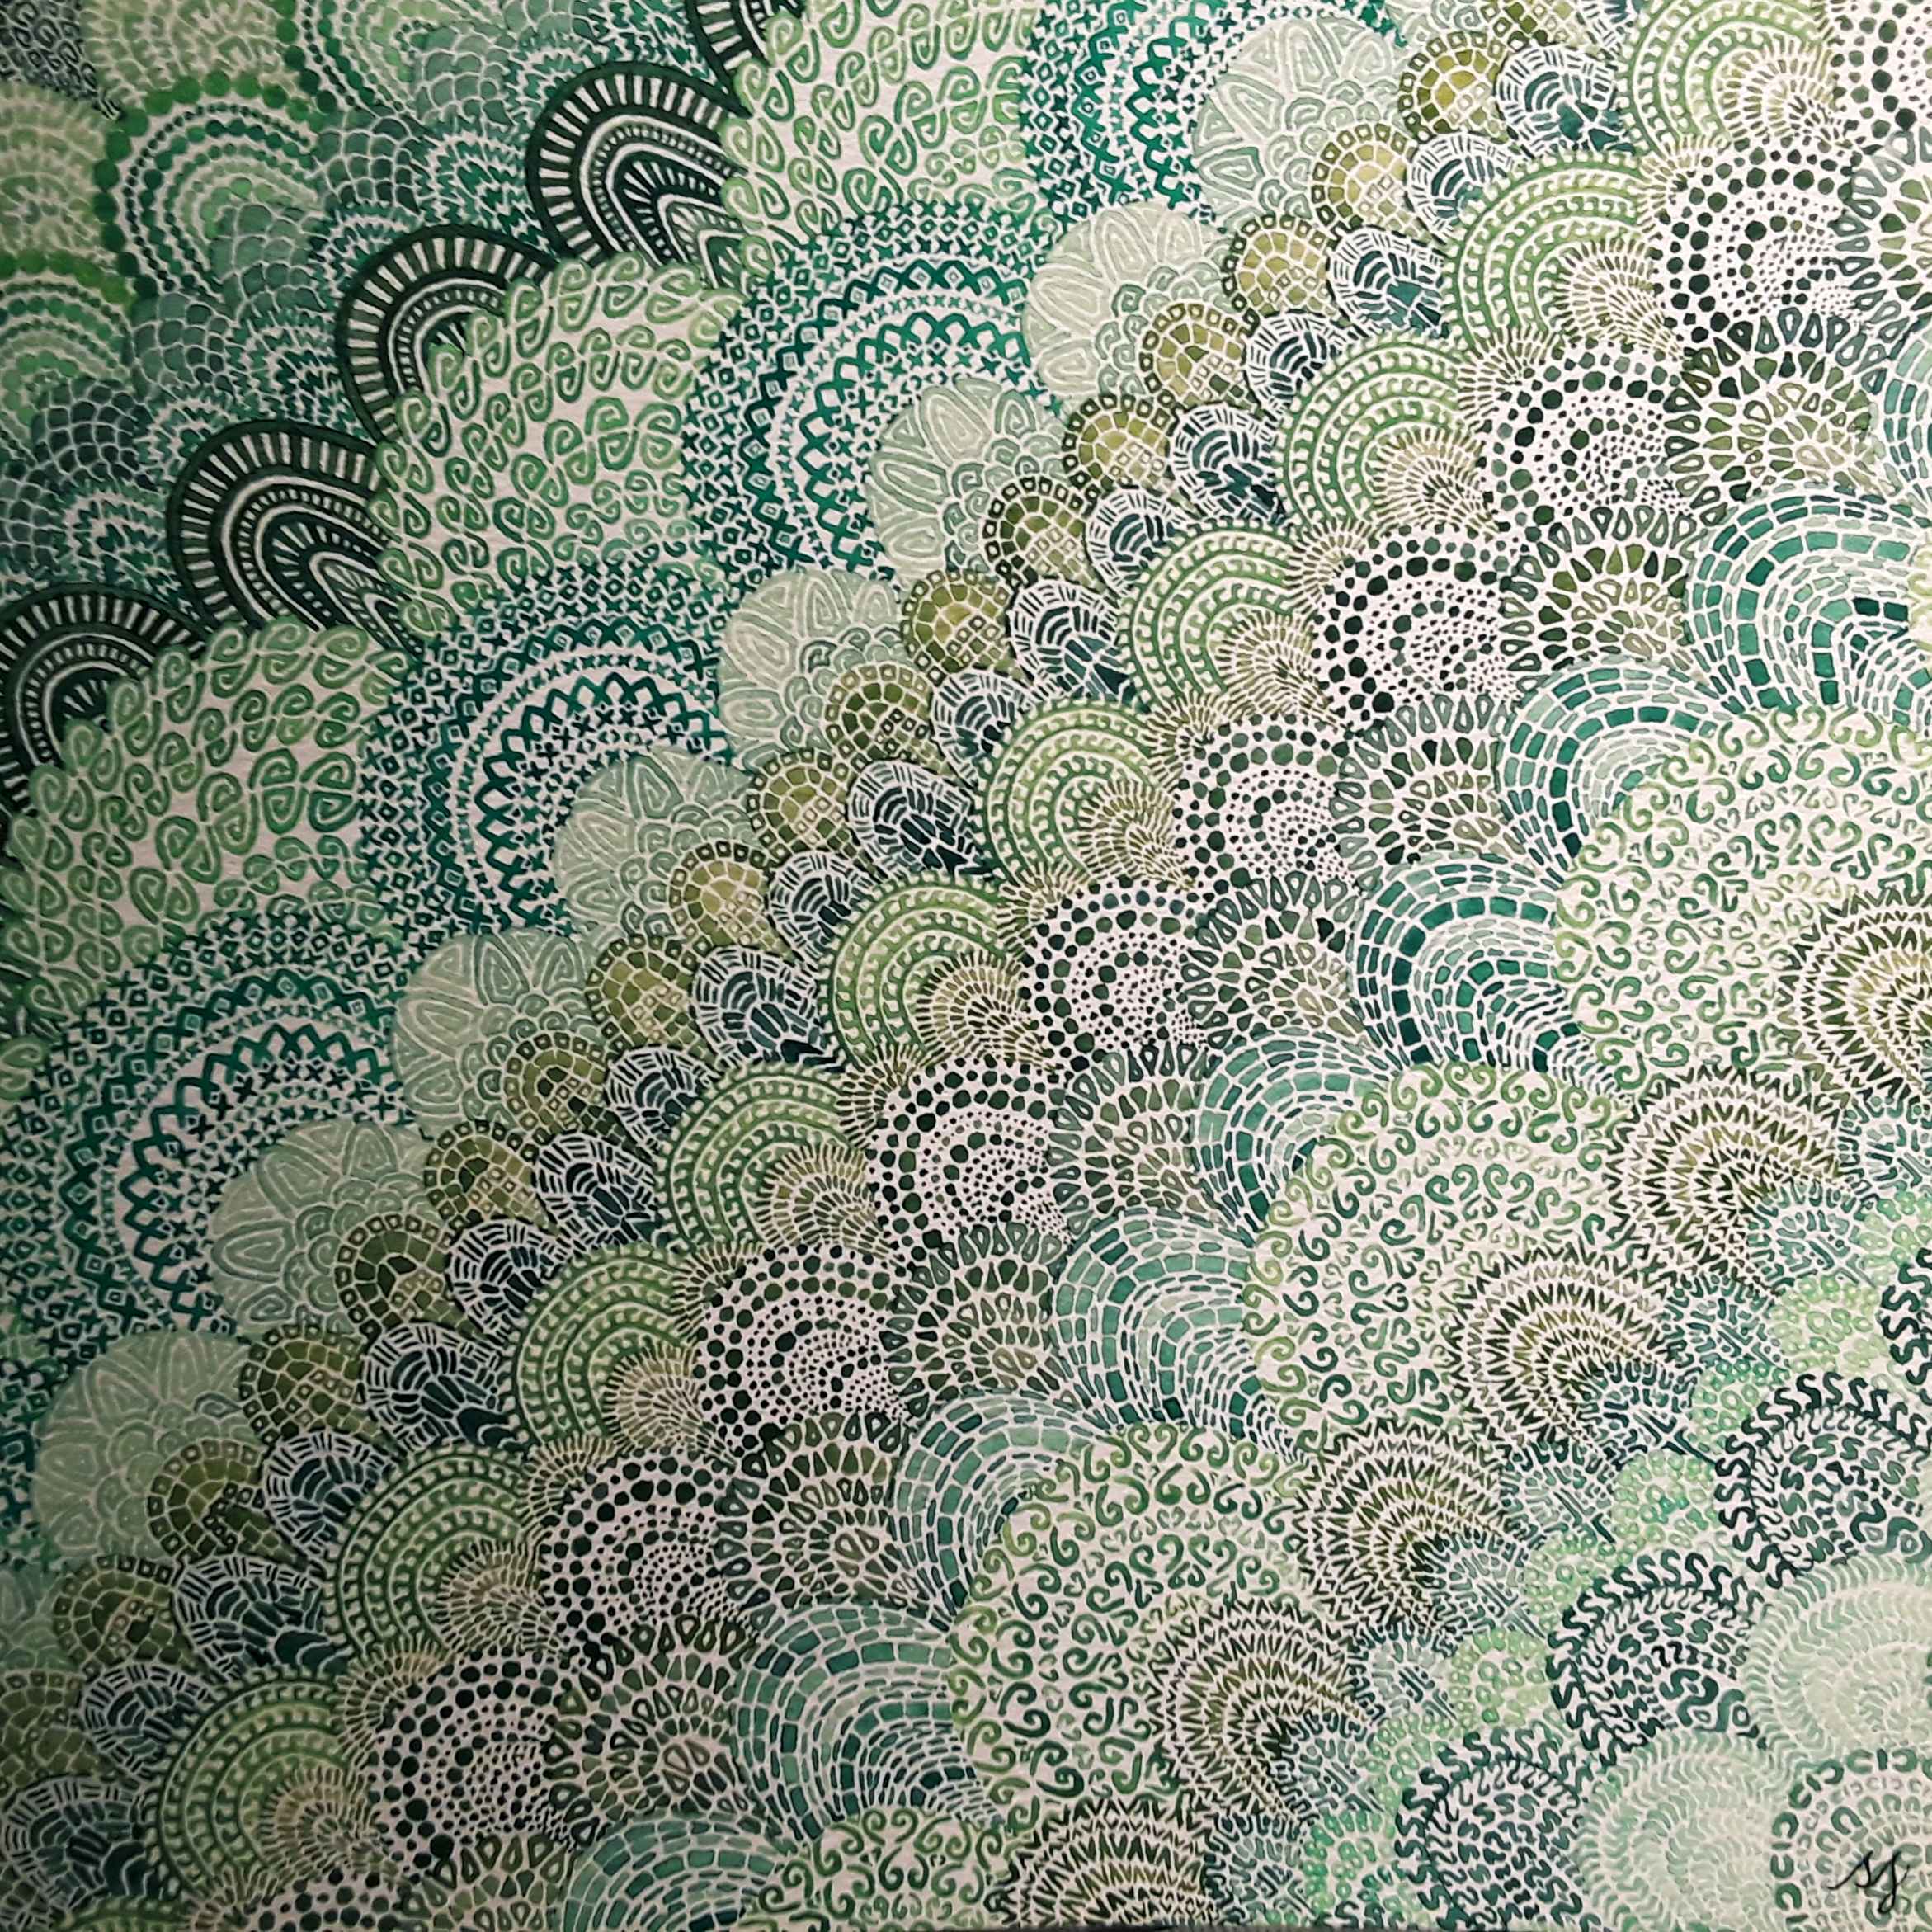 Green lace watercolor painting